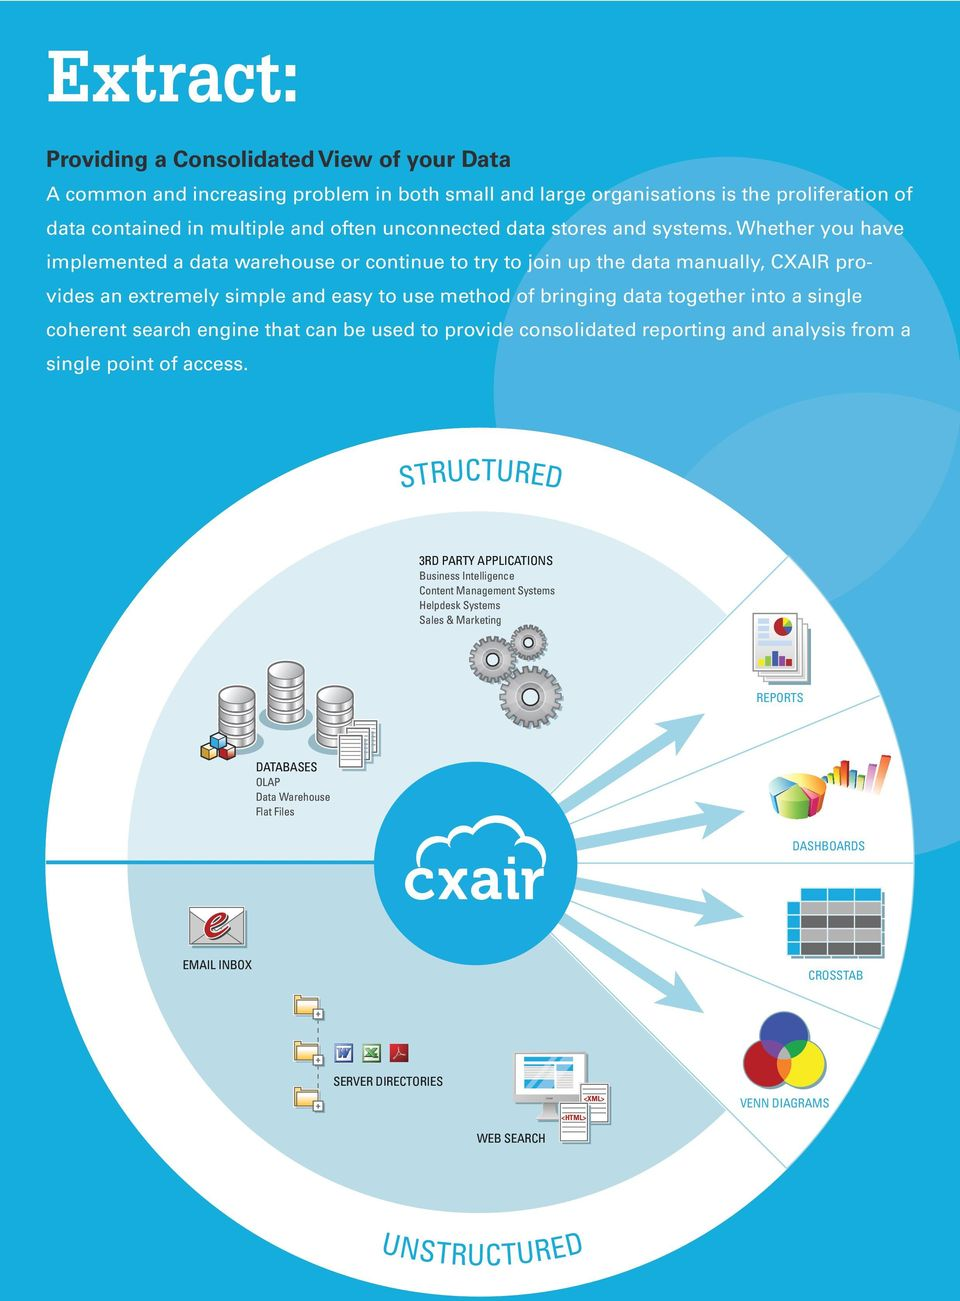 Whether you have implemented a data warehouse or continue to try to join up the data manually, CXAIR provides an extremely simple and easy to use method of bringing data together into a single